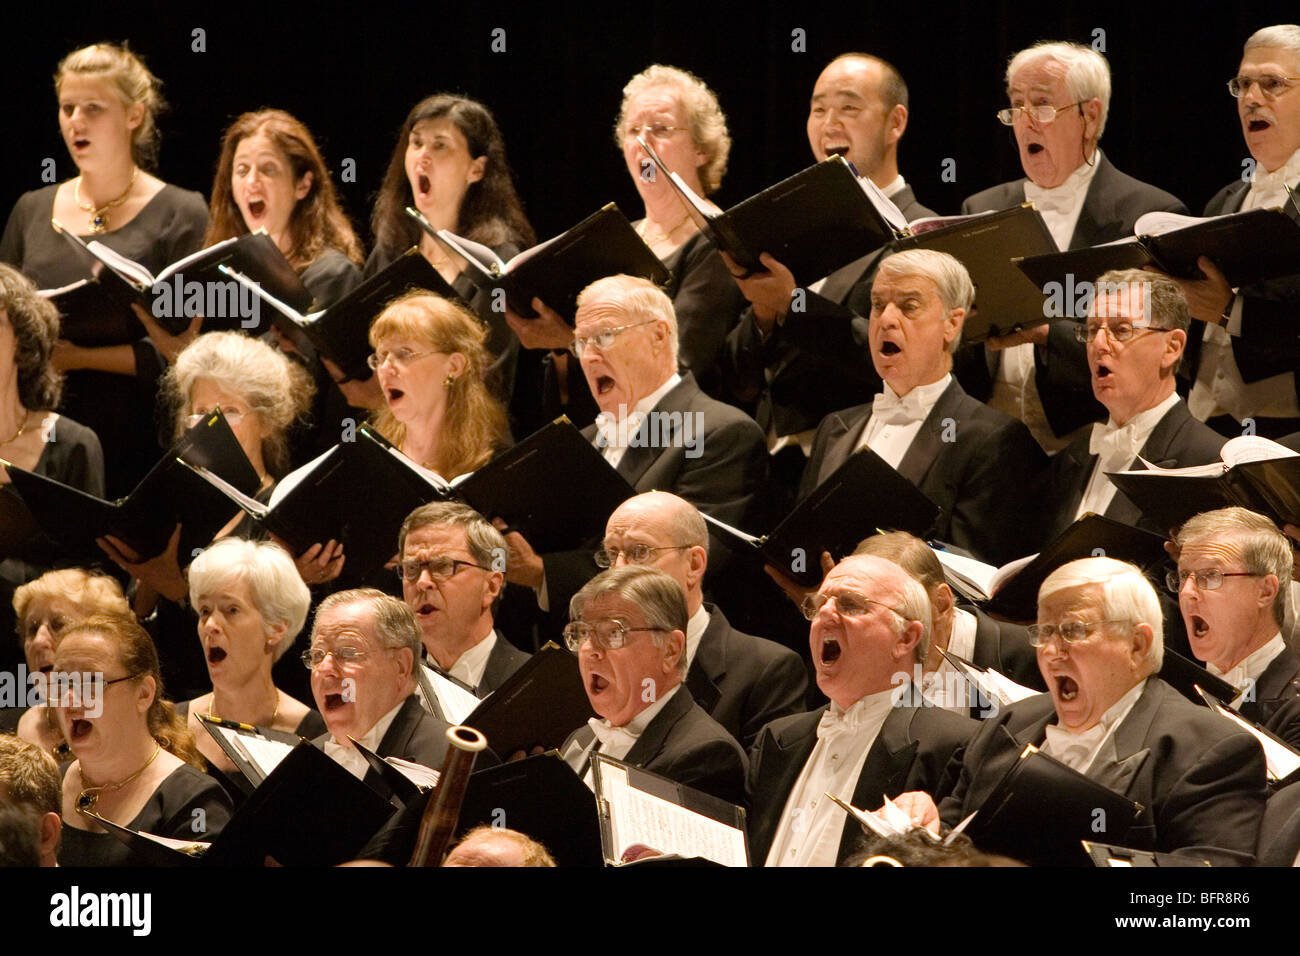 The Yale Alumni Chorus perform The Creation by Joseph Haydn at the 2007 National Arts Festival Grahamstown - Stock Image